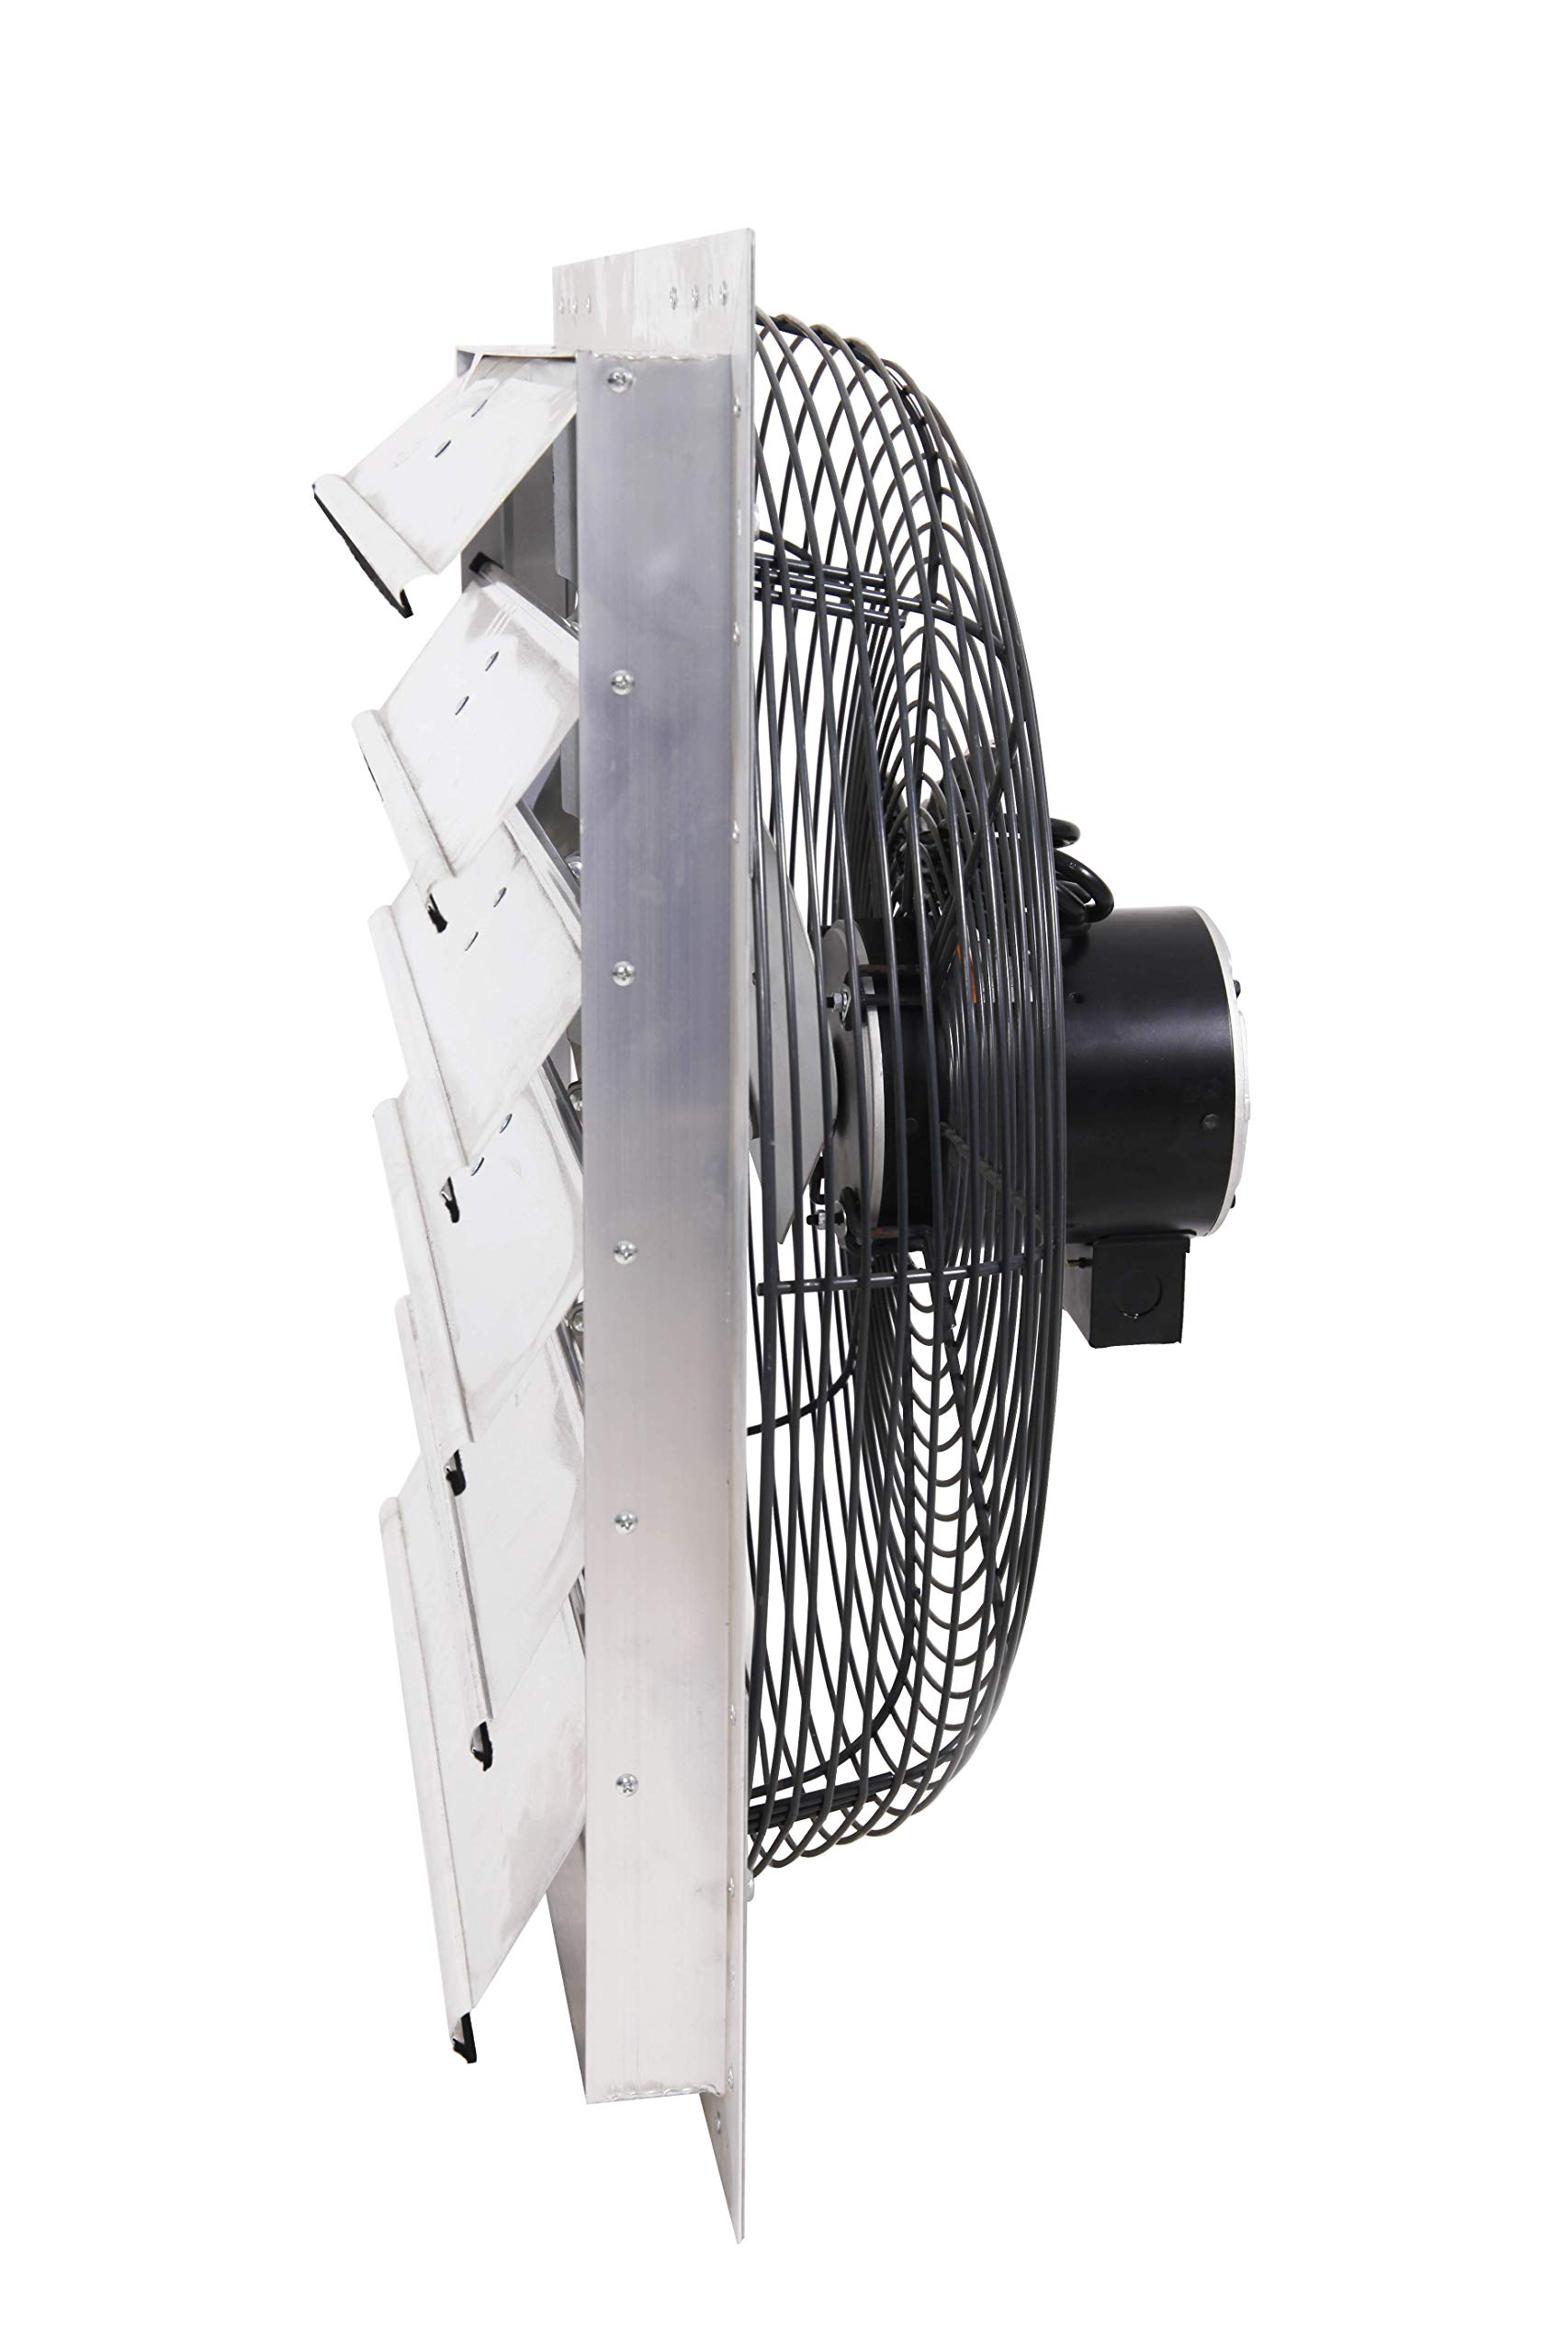 Fanpac S242 Wall-Mounted 2-Speed Shutter Exhaust Fan, 24'' by Fanpac